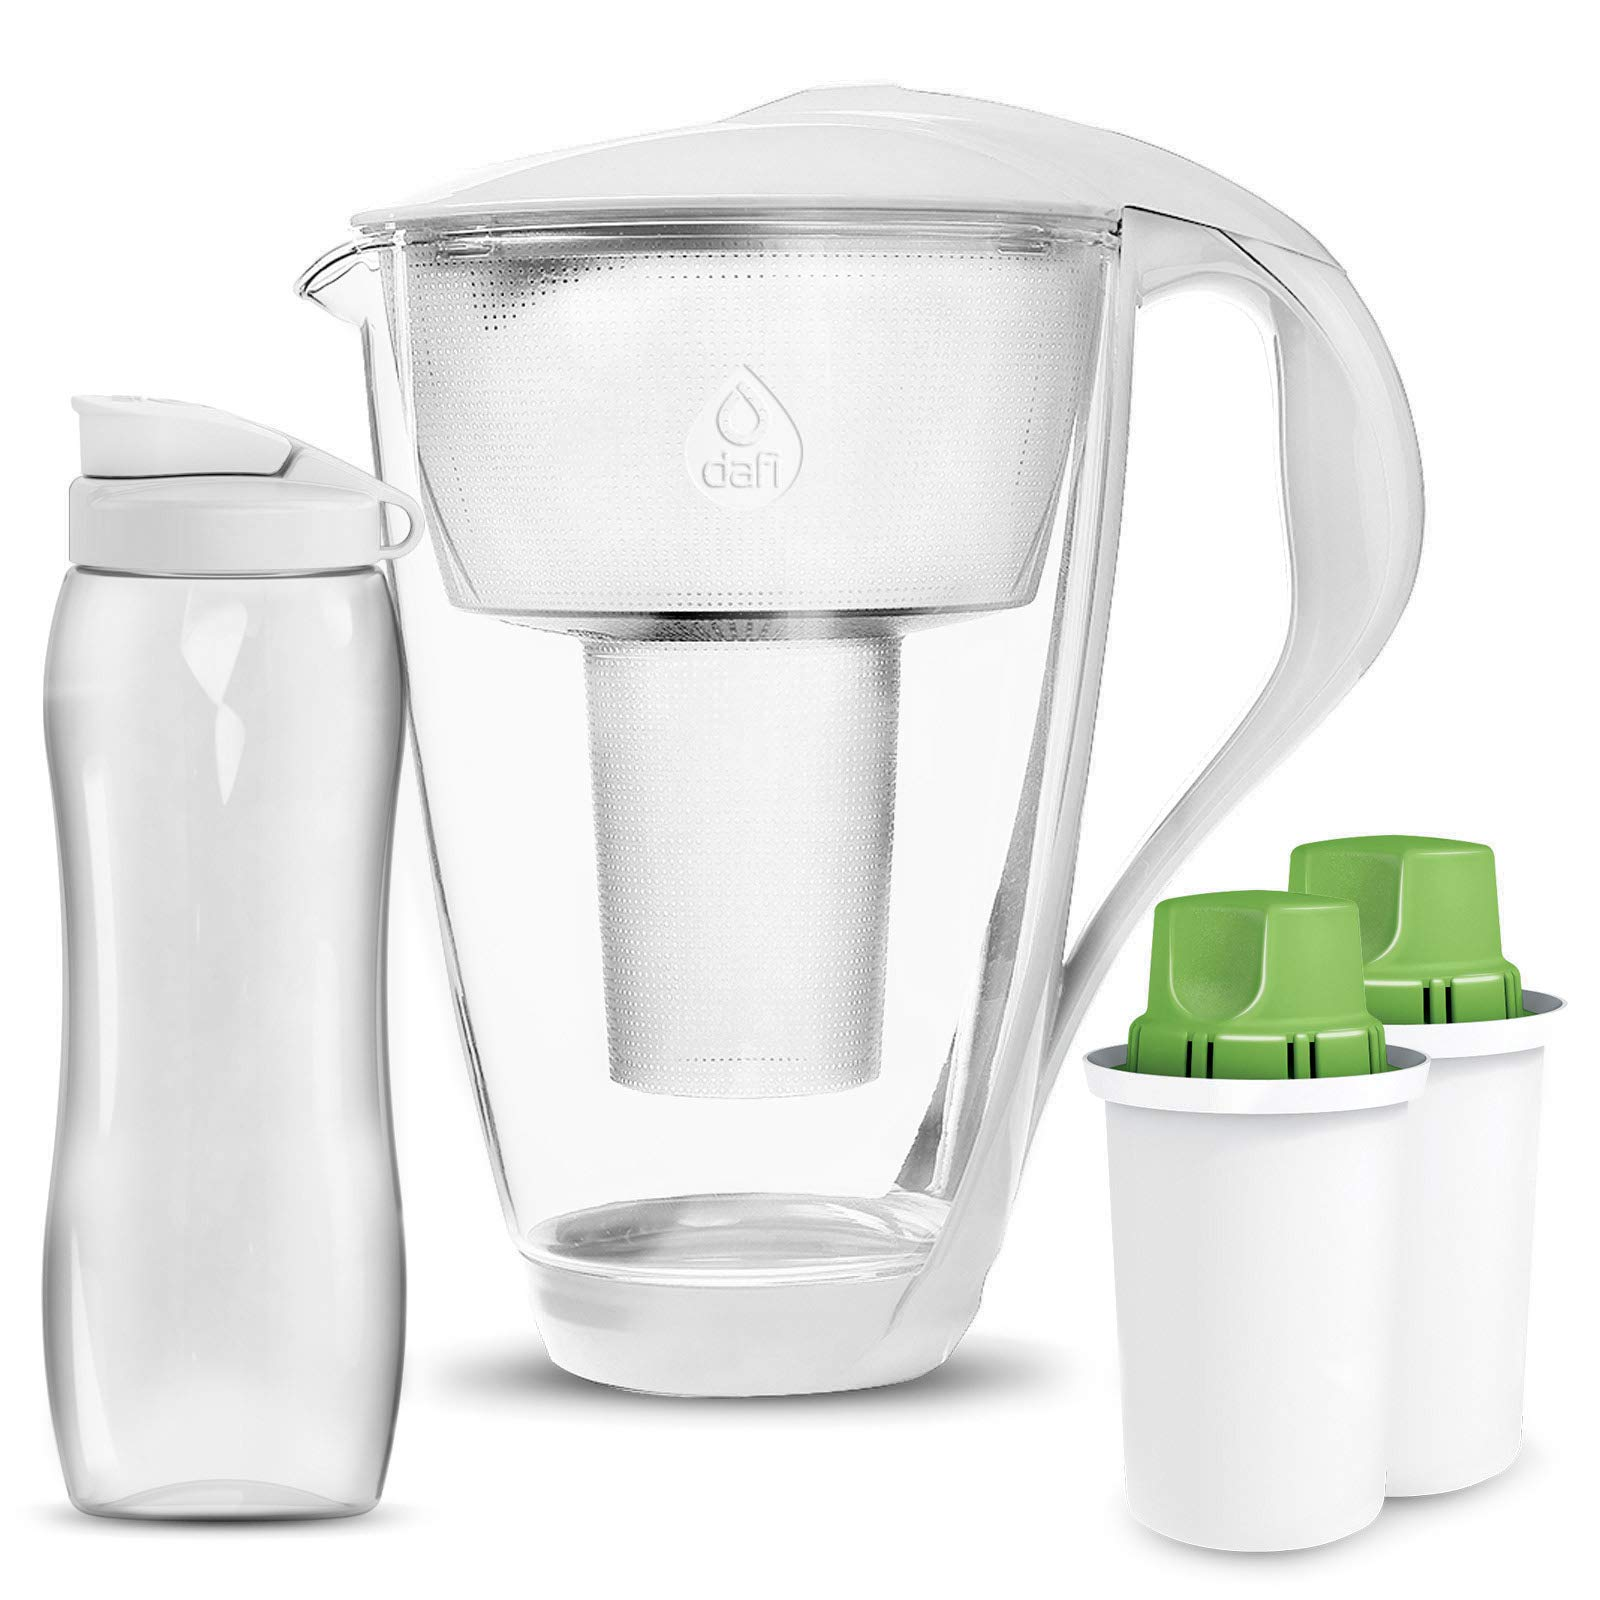 Dafi Alkaline UP Crystal Glass Water Pitcher 8 cups - Highest Quality Water Pitcher made from Borosilicate Glass - Set with 2 Alkaline UP Water Filters and FREE 24 fl oz Sport Water Bottle (White)